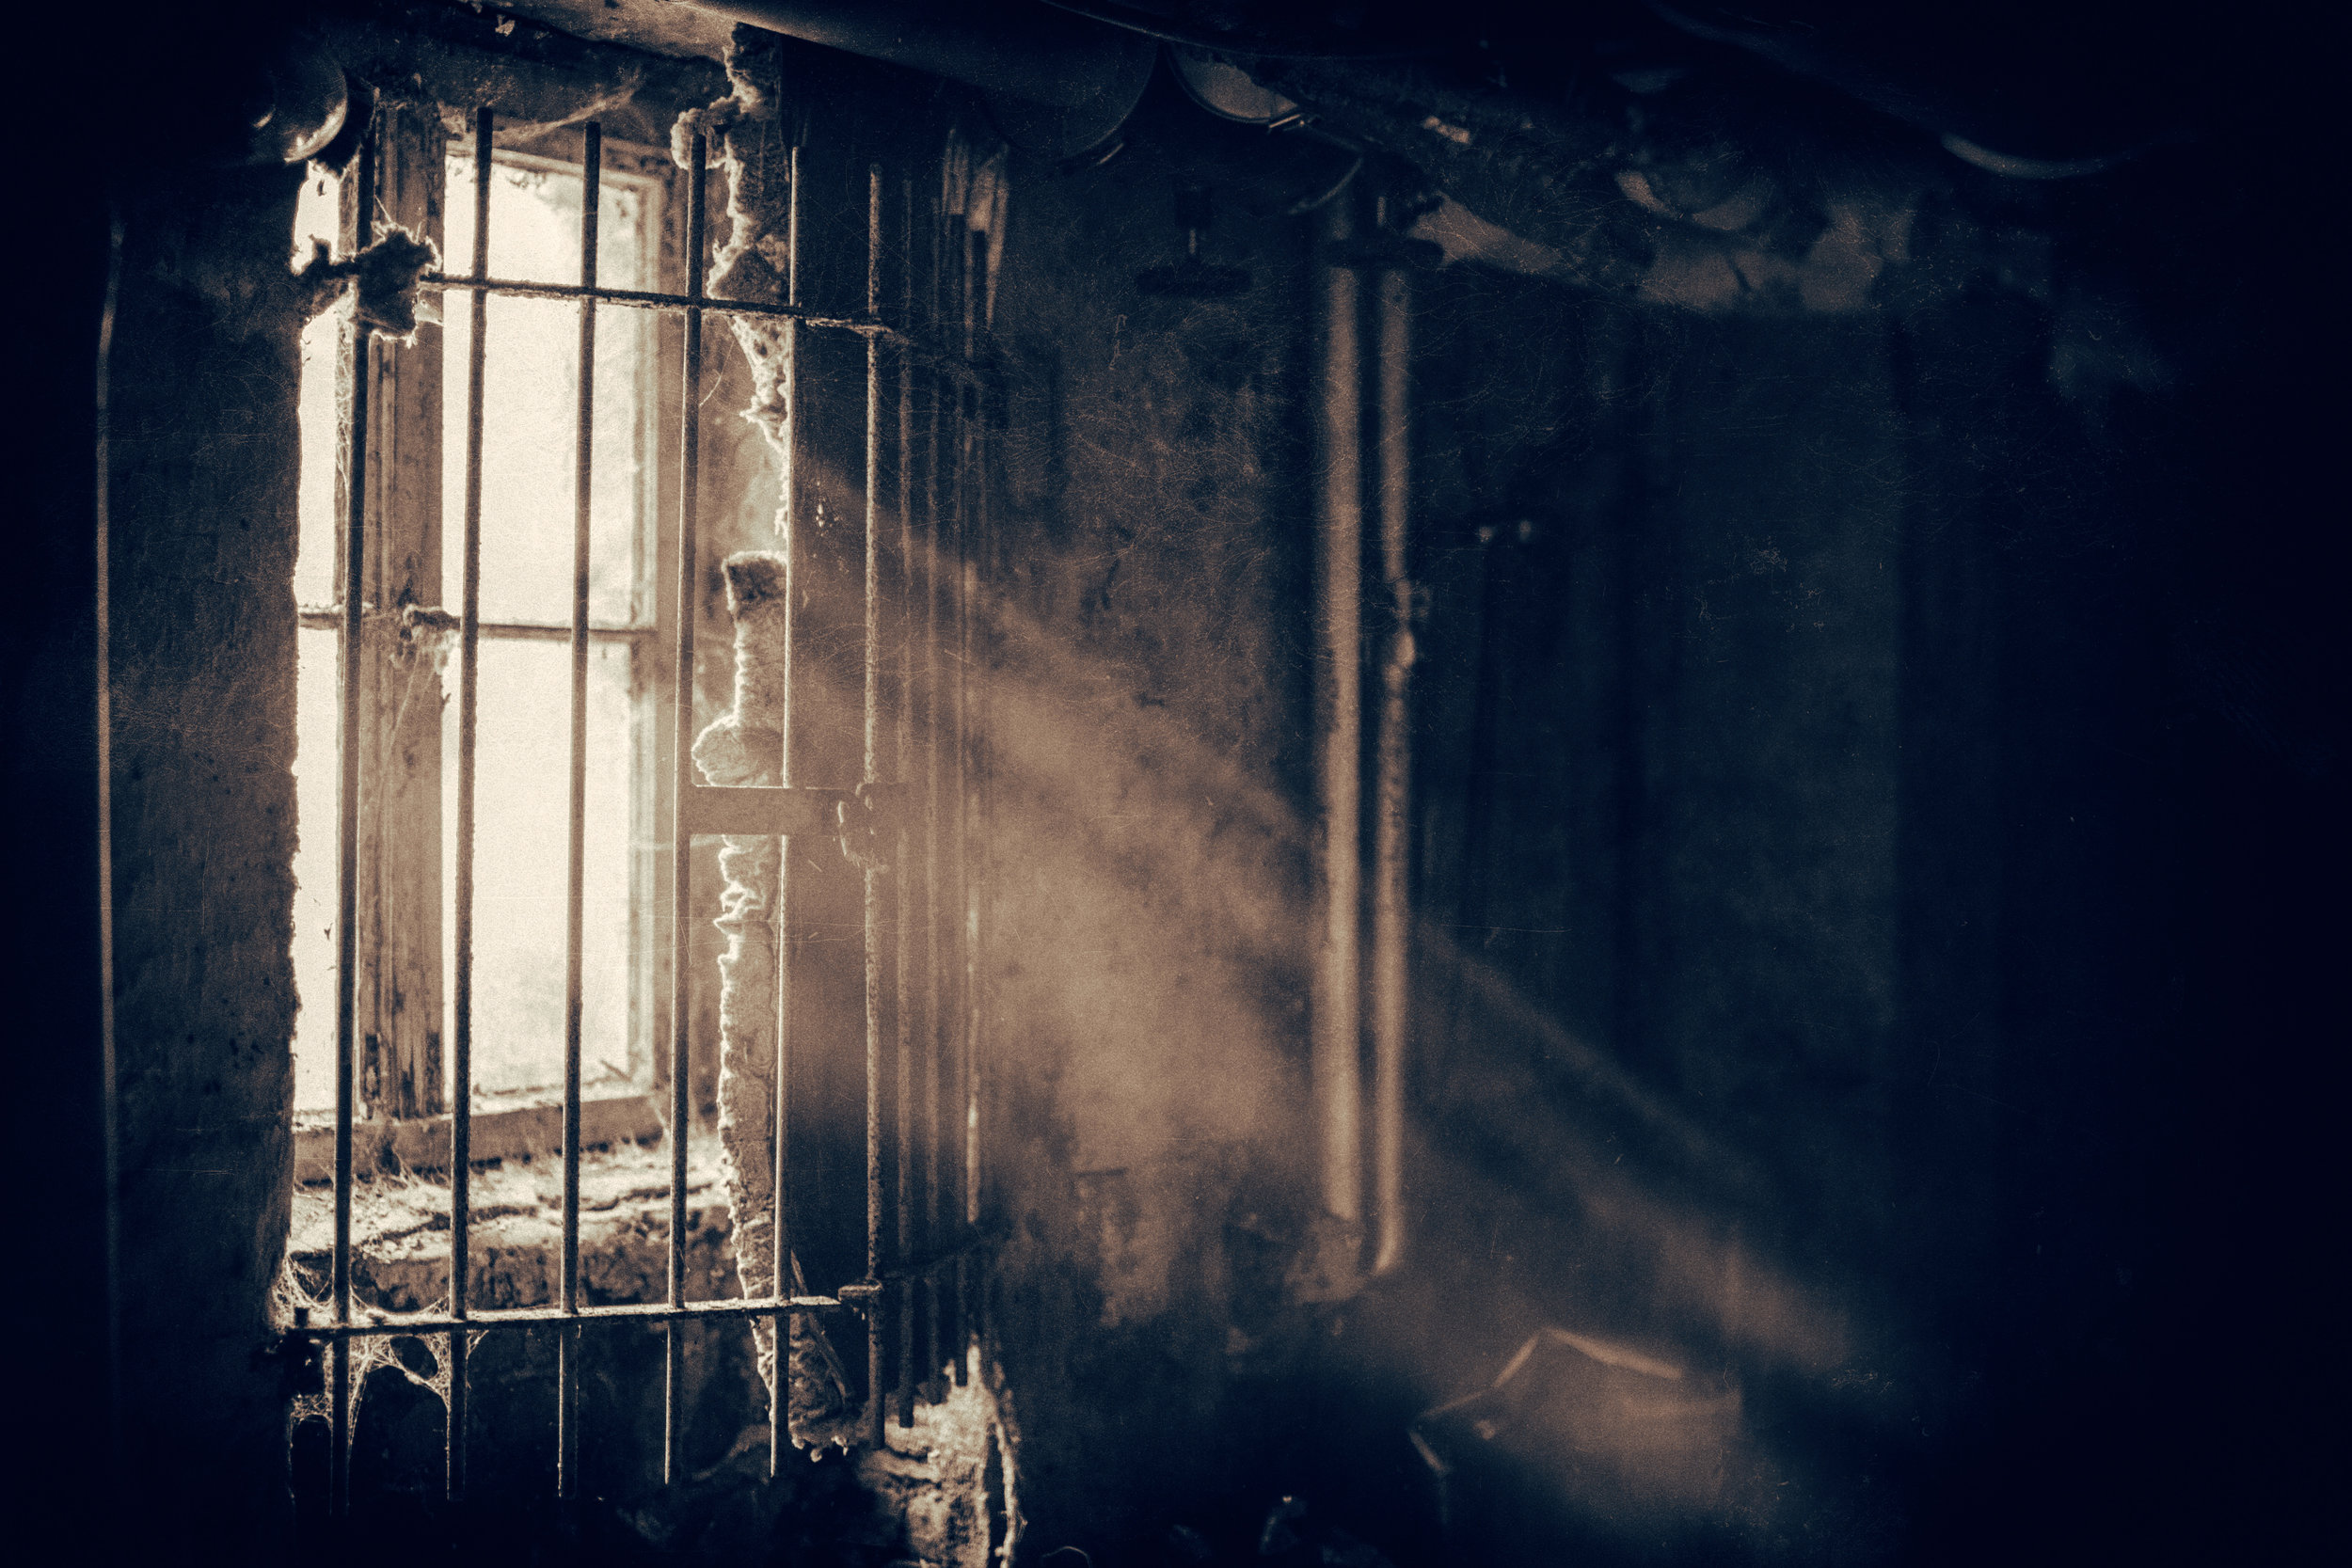 Instead of coming to Rome as a preacher, he came as a prisoner. Instead of preaching to the masses, God gave him a pulpit in a prison to a congregation of 8 Praetorian guards! -